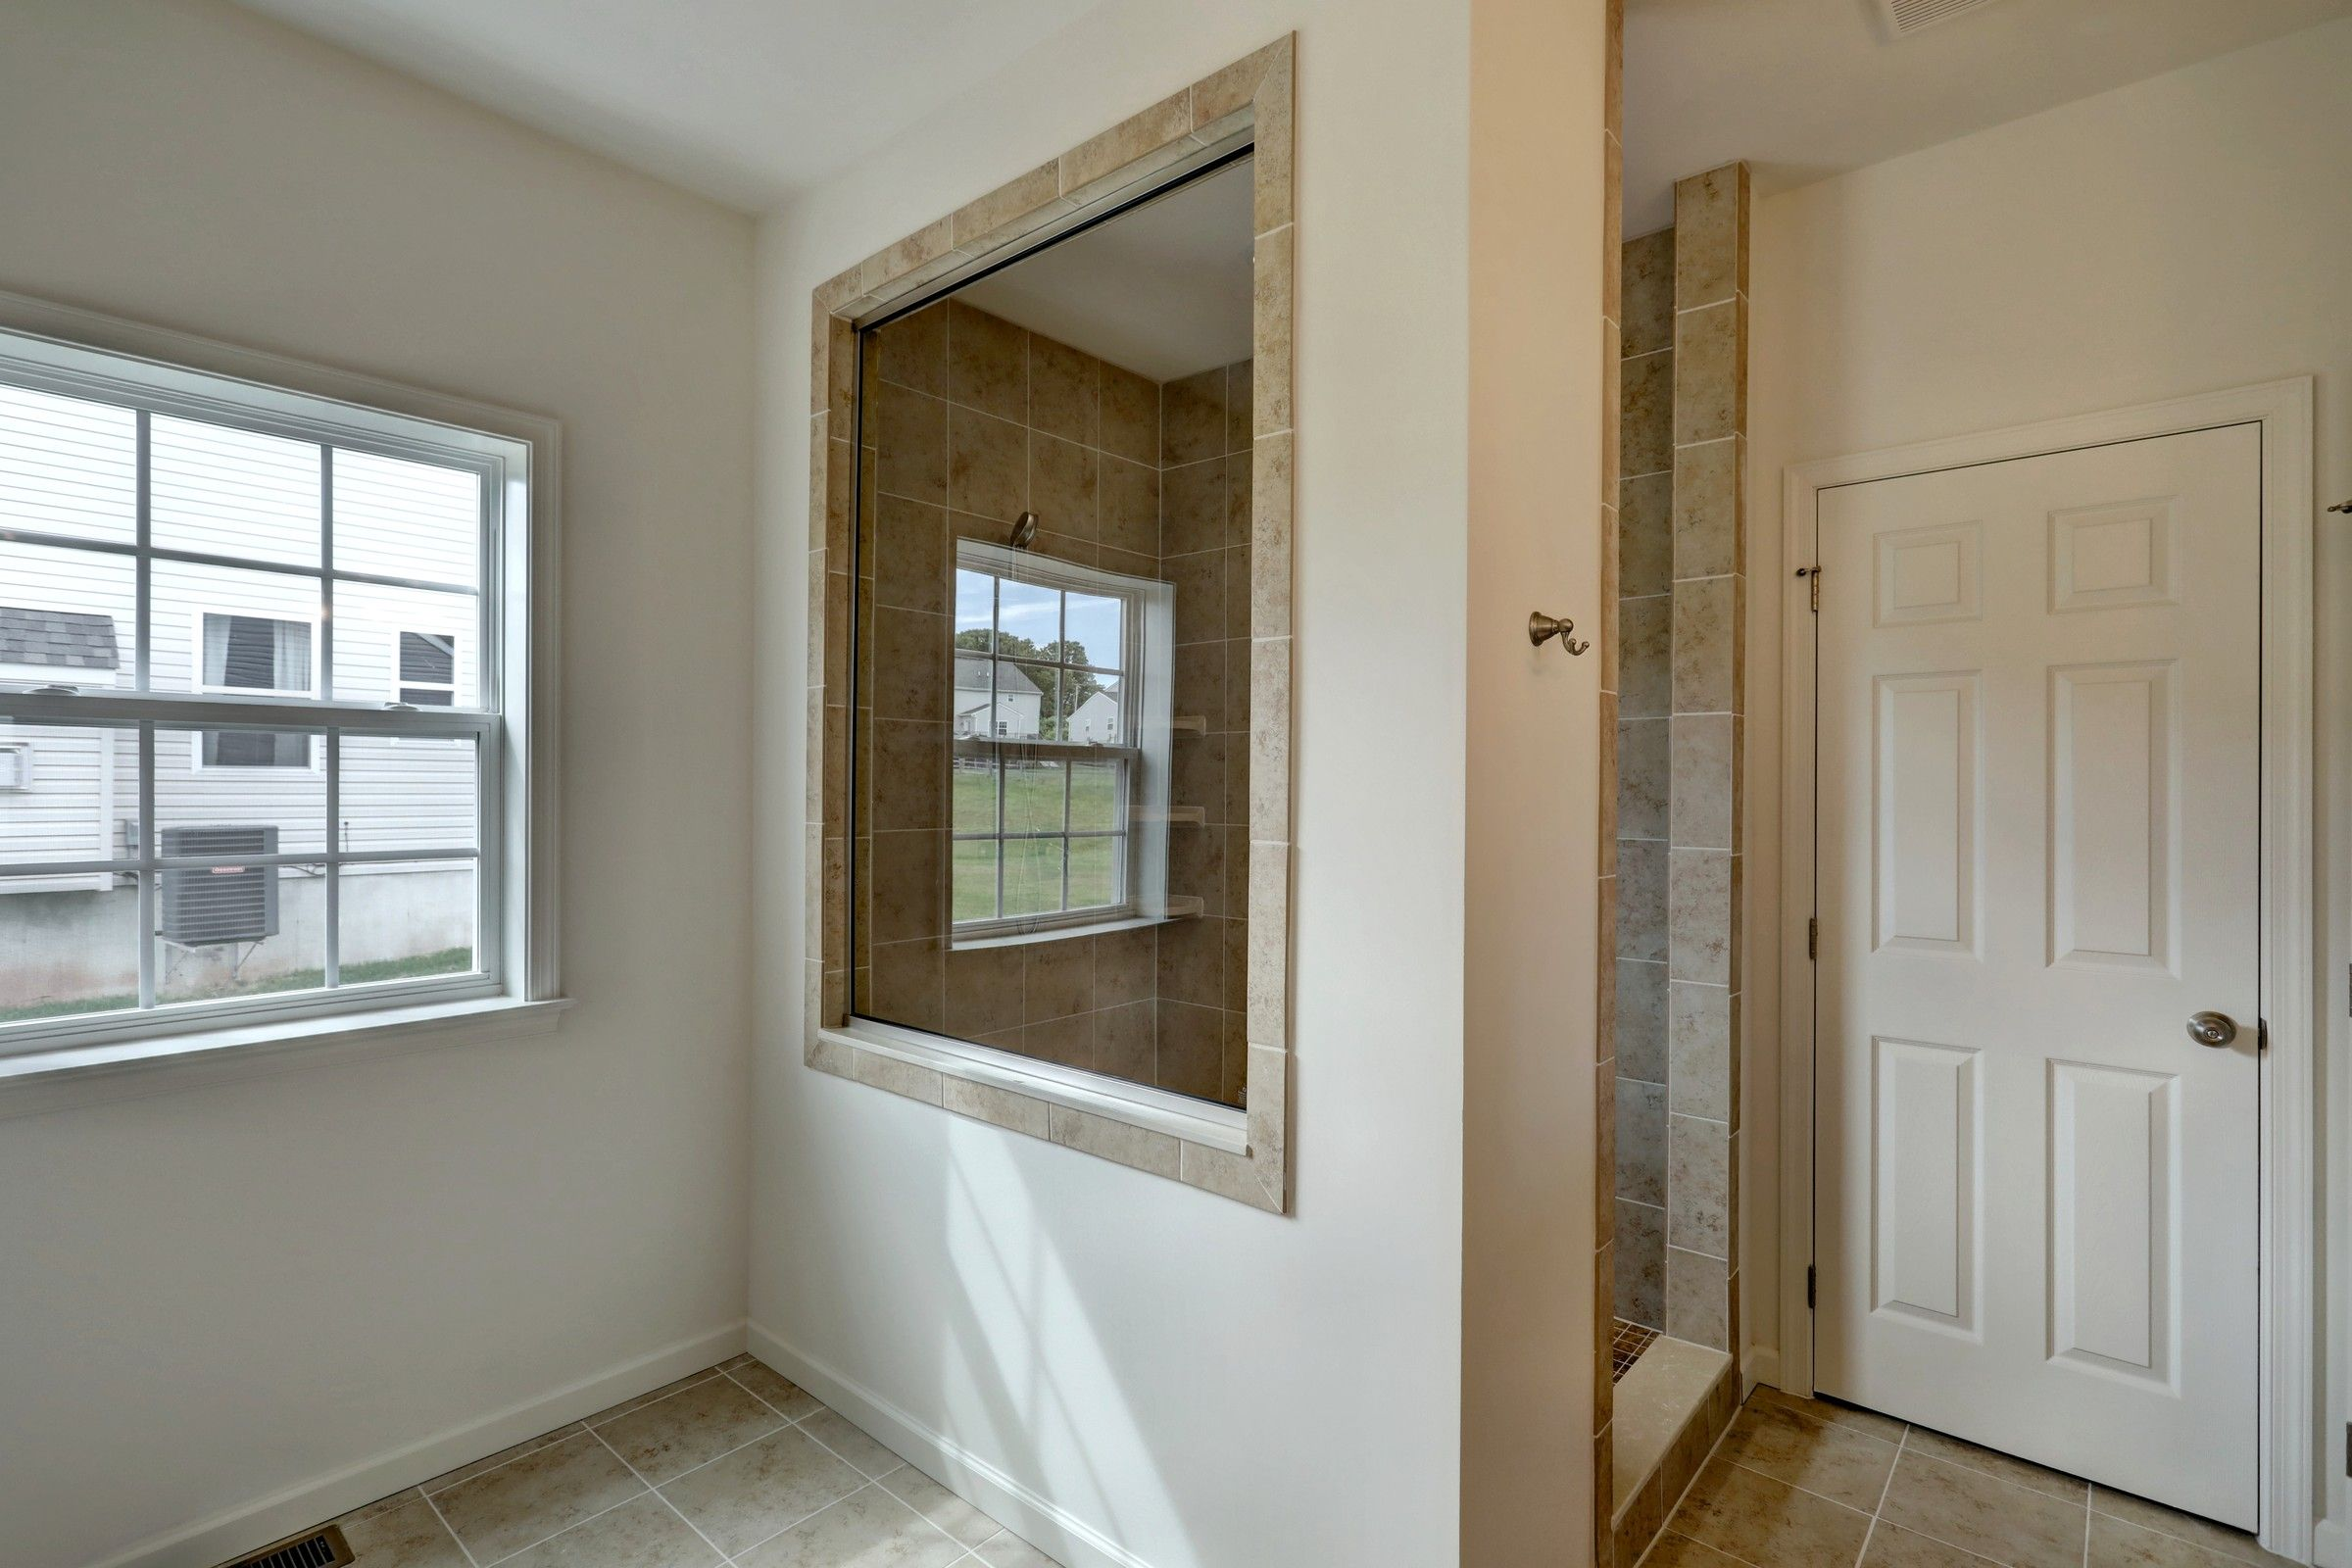 Bathroom featured in the Arcadia Normandy By Keystone Custom Homes in York, PA